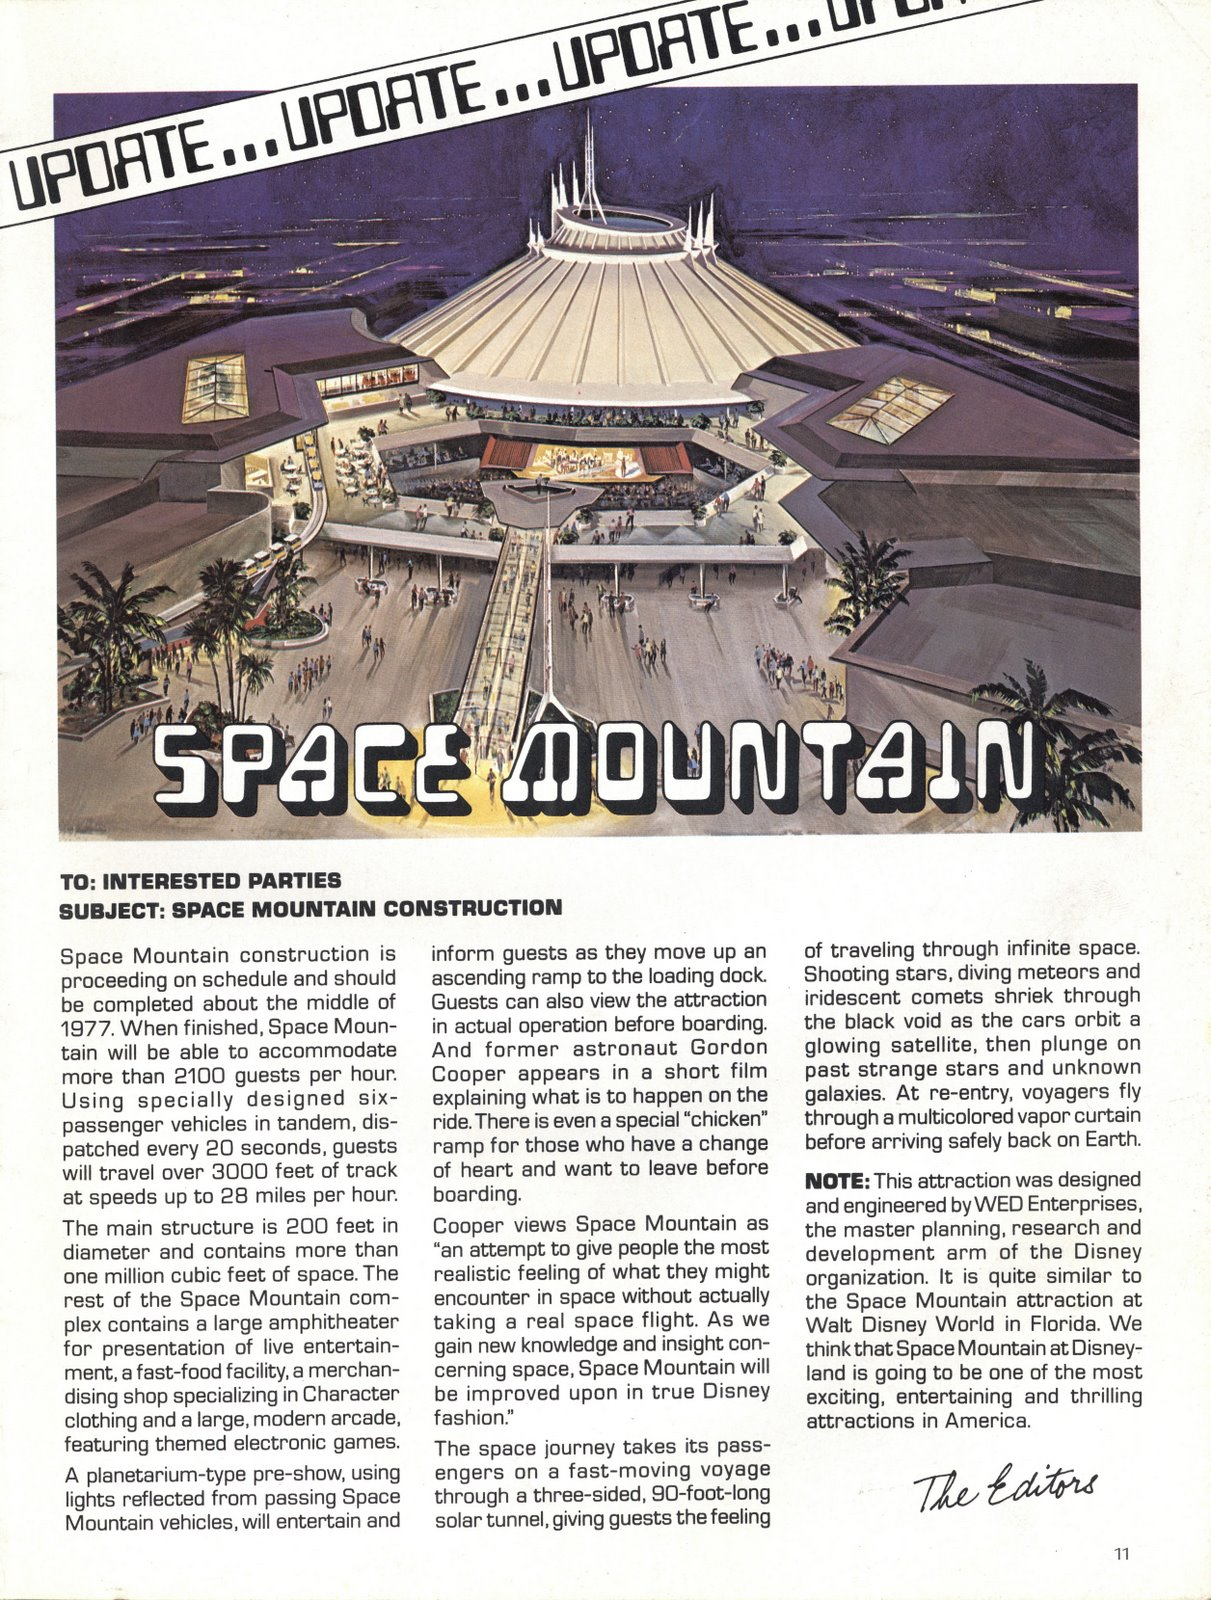 1970's Disneyland Space Mountain Advertisement